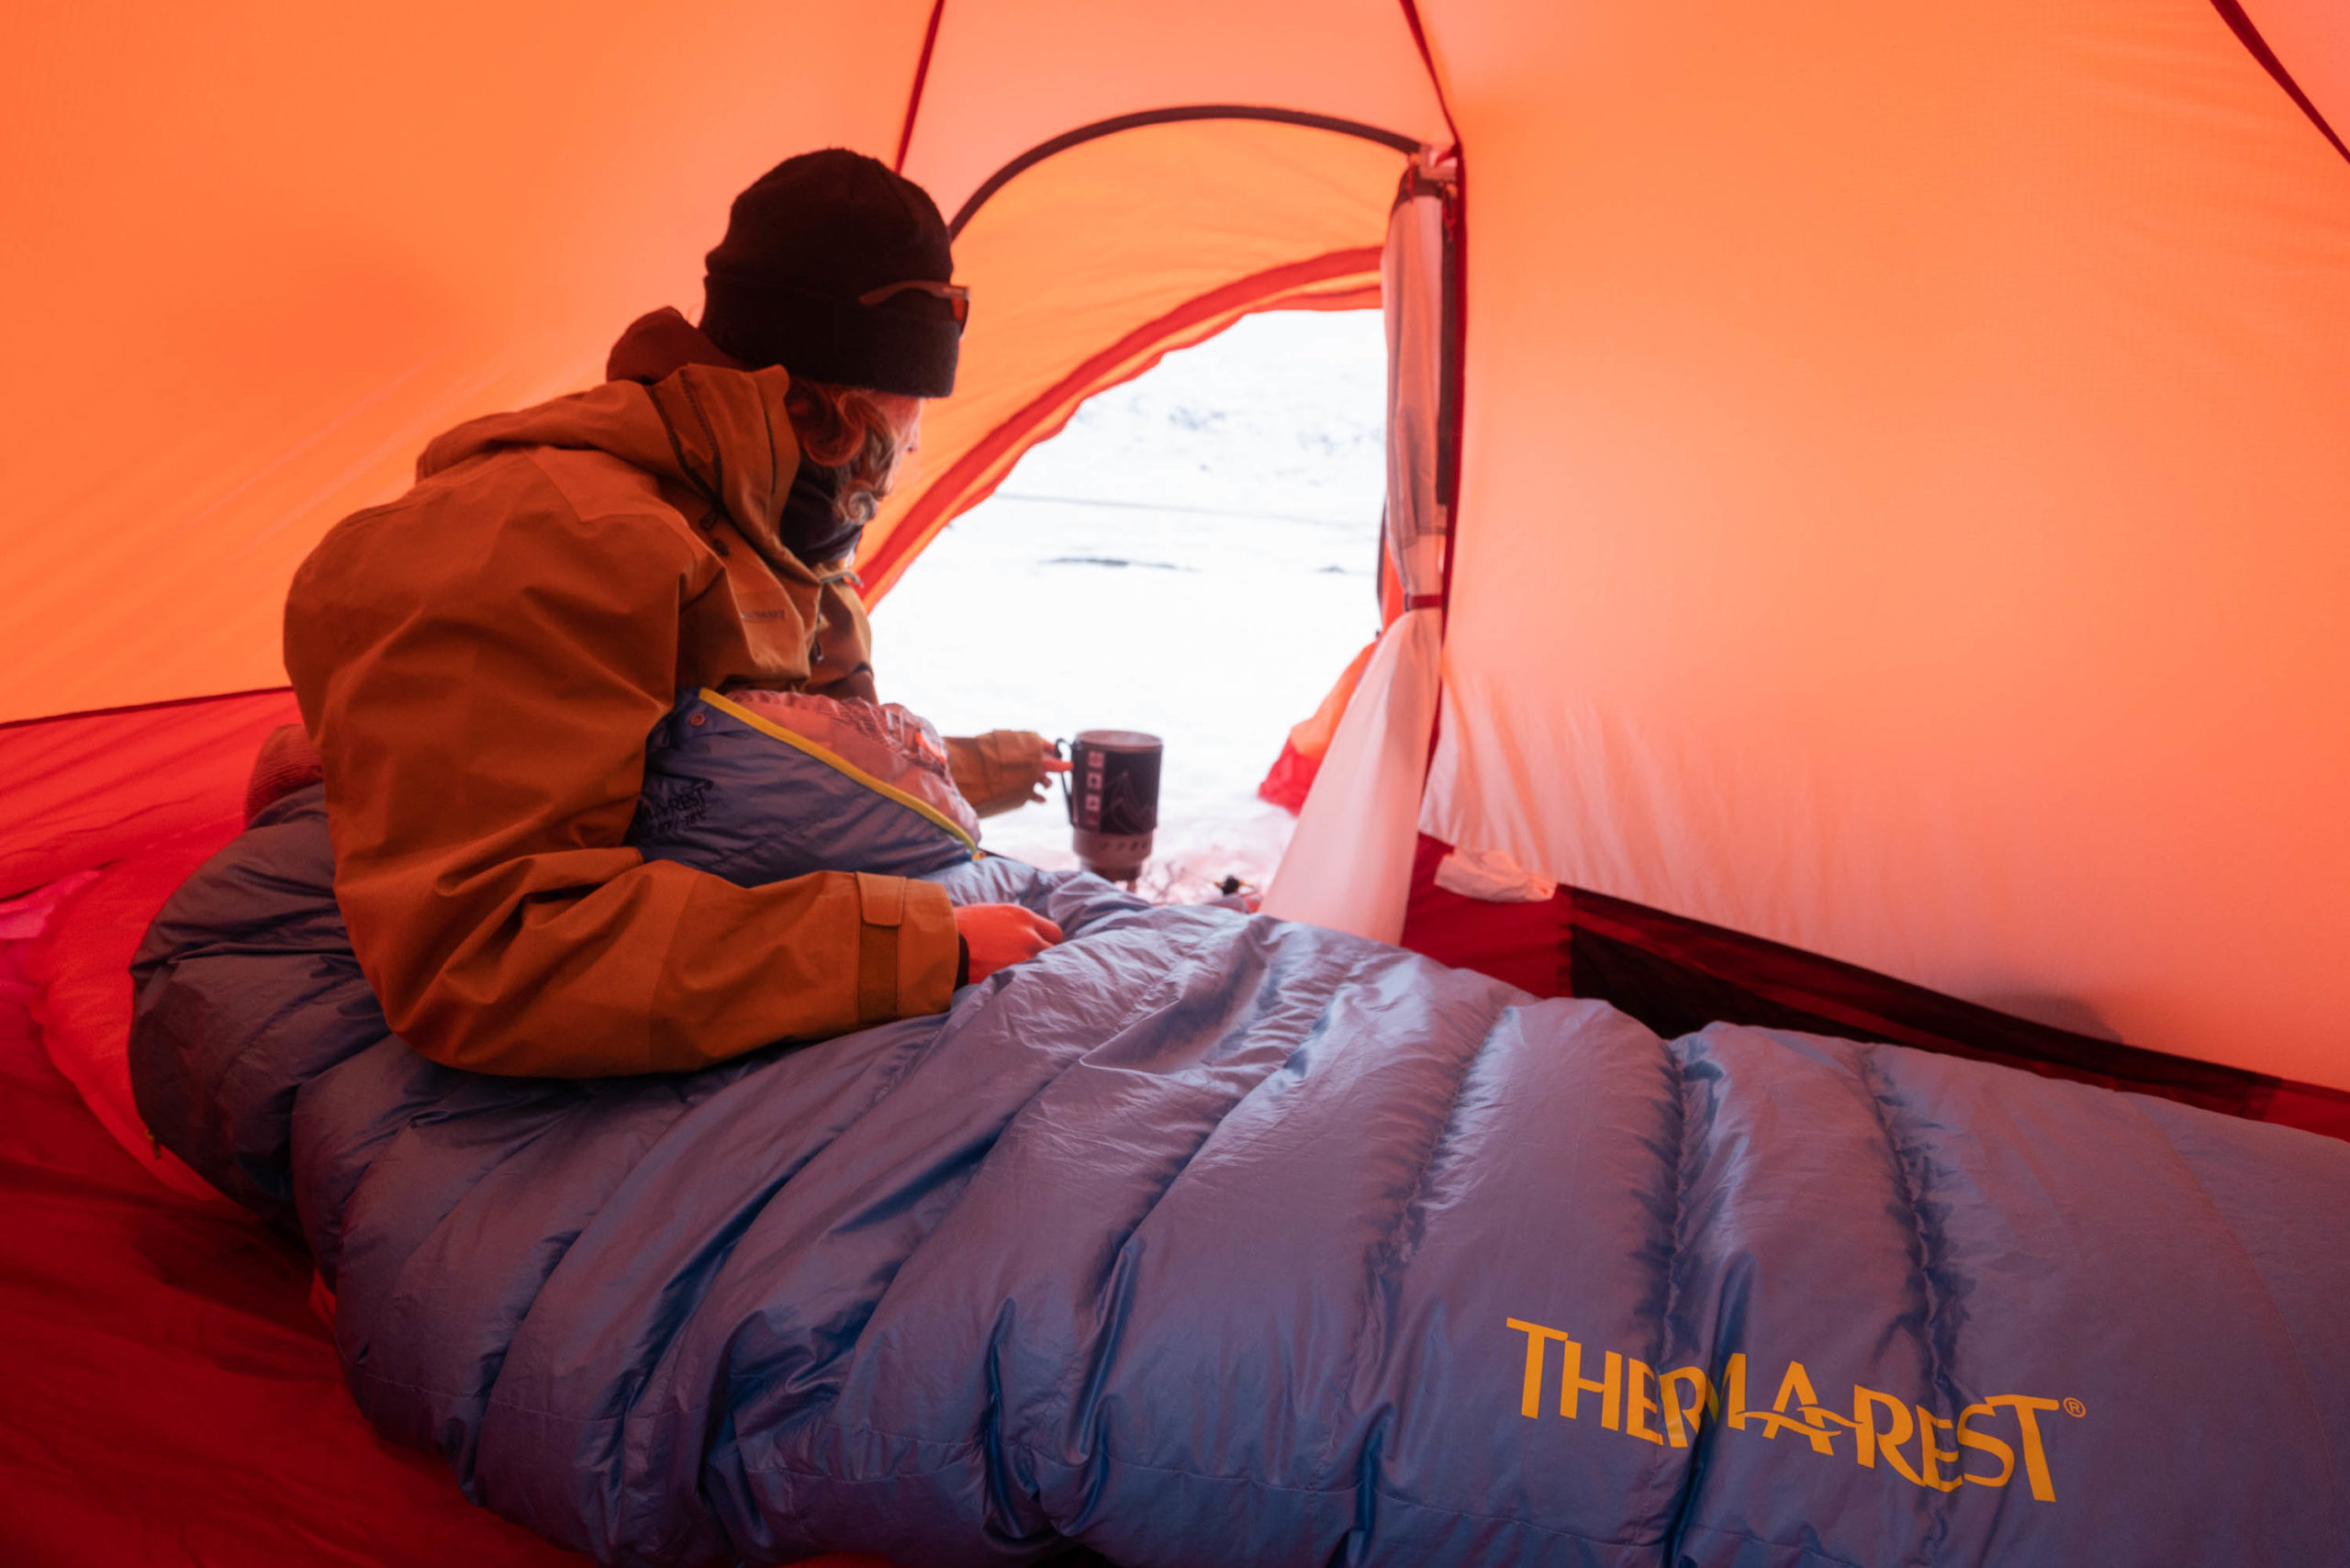 Utilizing at least one warm sleeping pad and potentially layering a sleeping bag with a quilt are excellent components of a sleep system designed to make staying warm while winter camping easier.